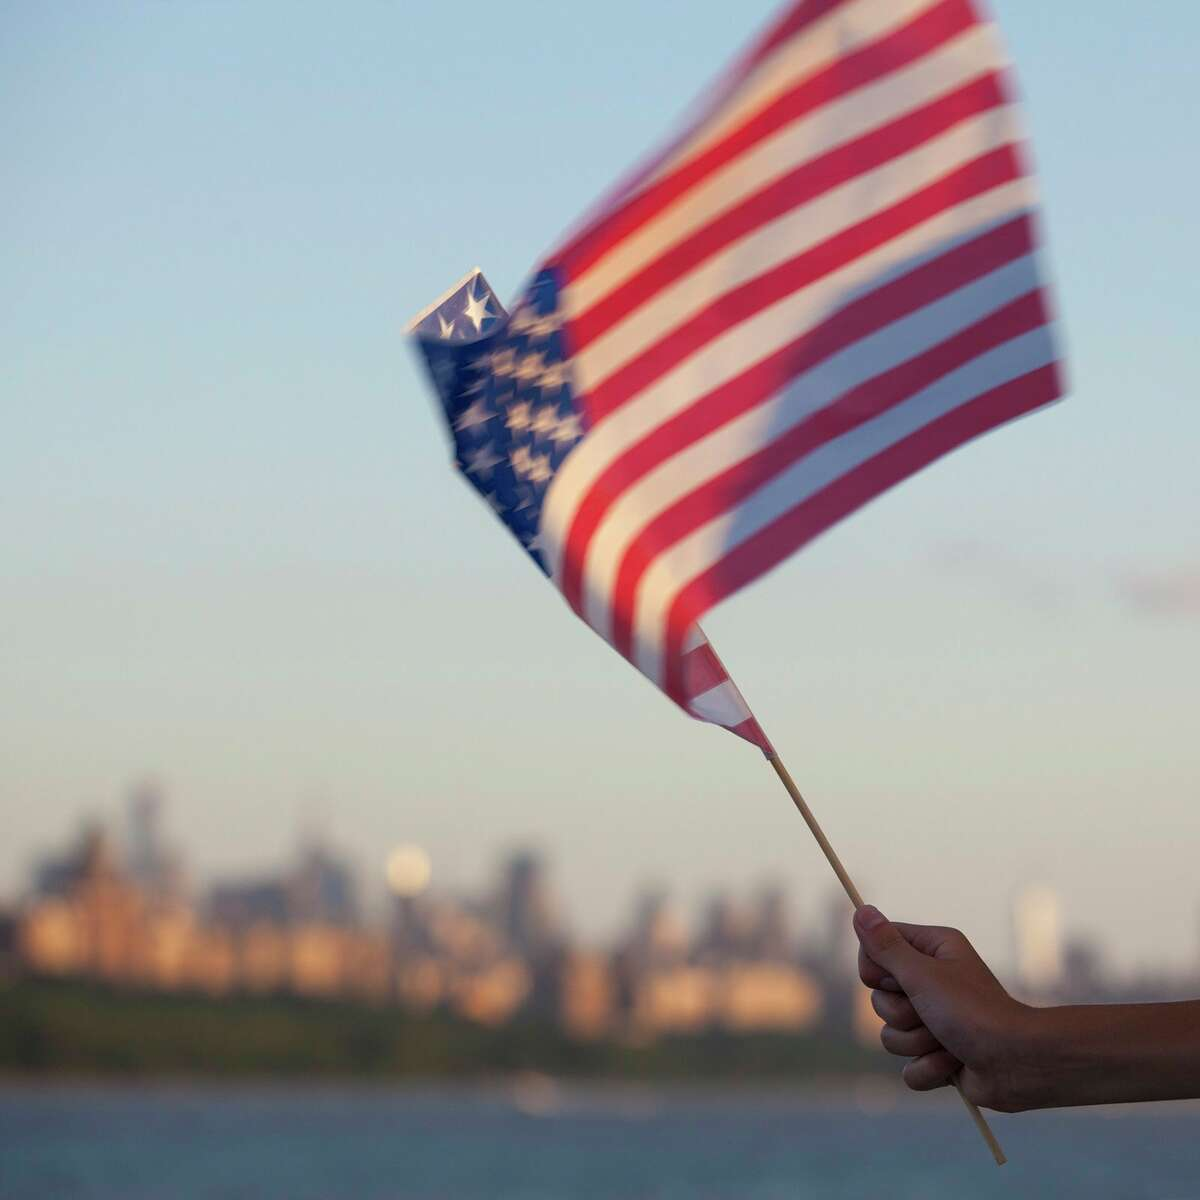 An American flag is waved near the Hudson River in New York City on July 4, 2013. (Dreamstime/TNS)